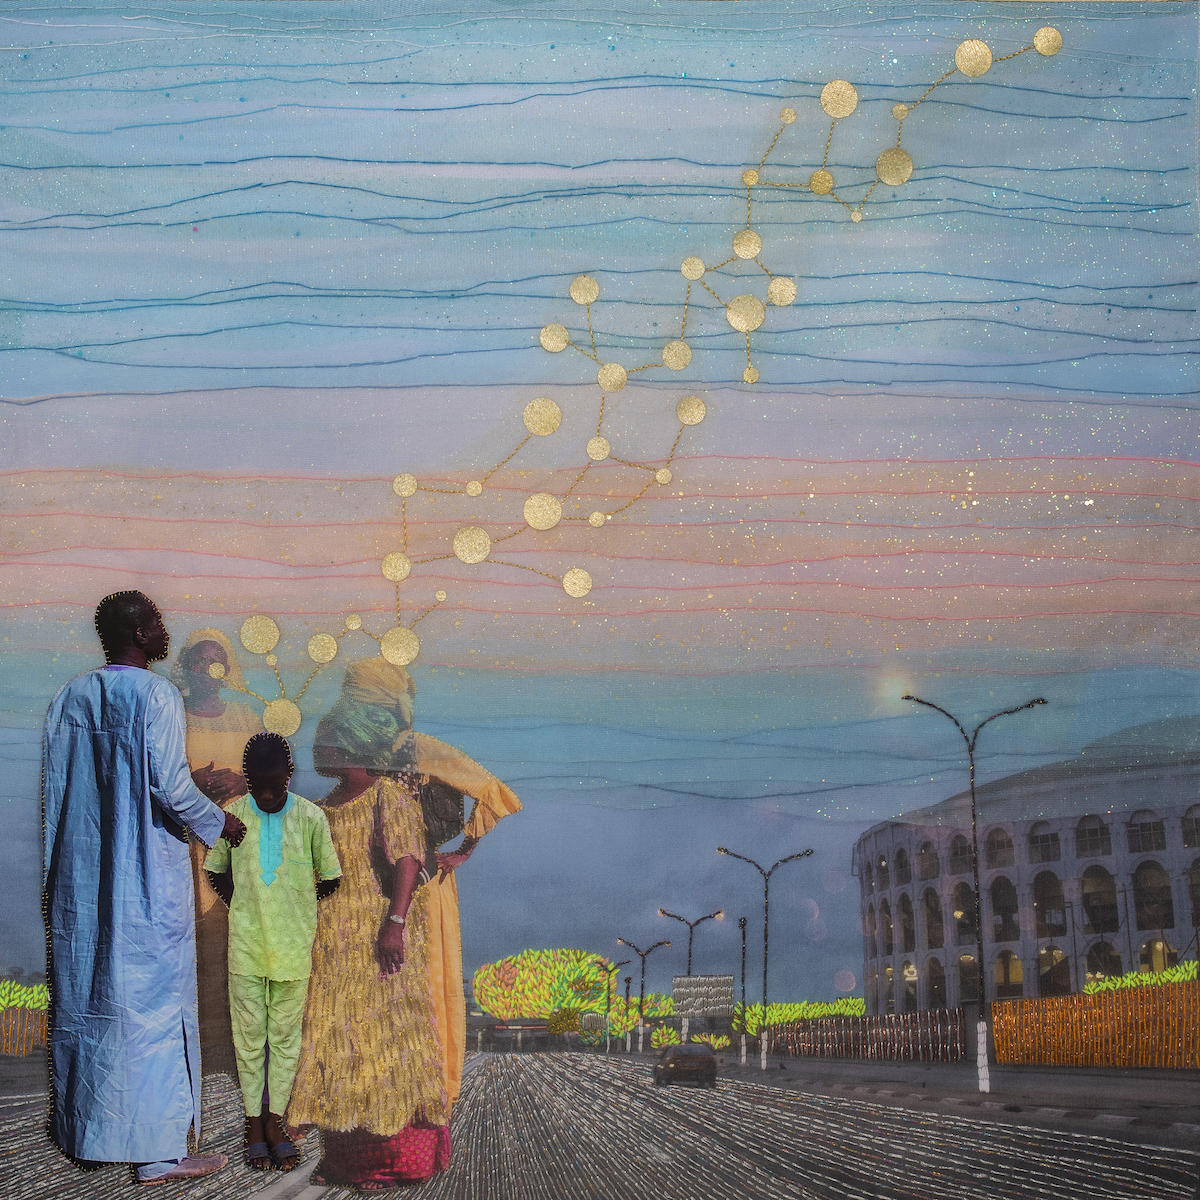 Joana Choumali, Dream Leftovers, Series Albahian, 2019.